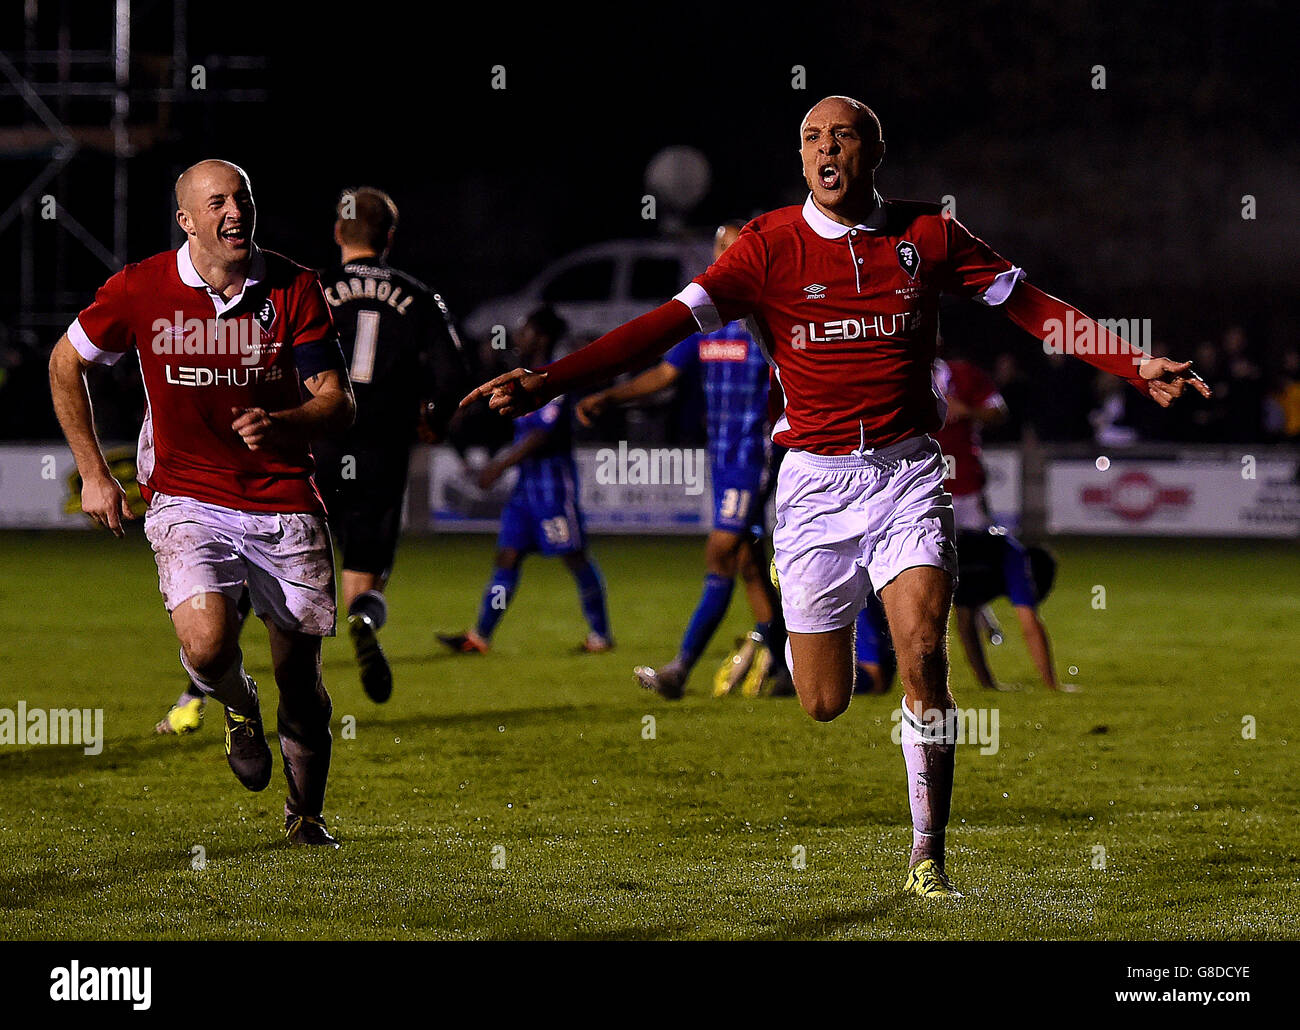 Salford vs notts county betting online cpu based bitcoins free